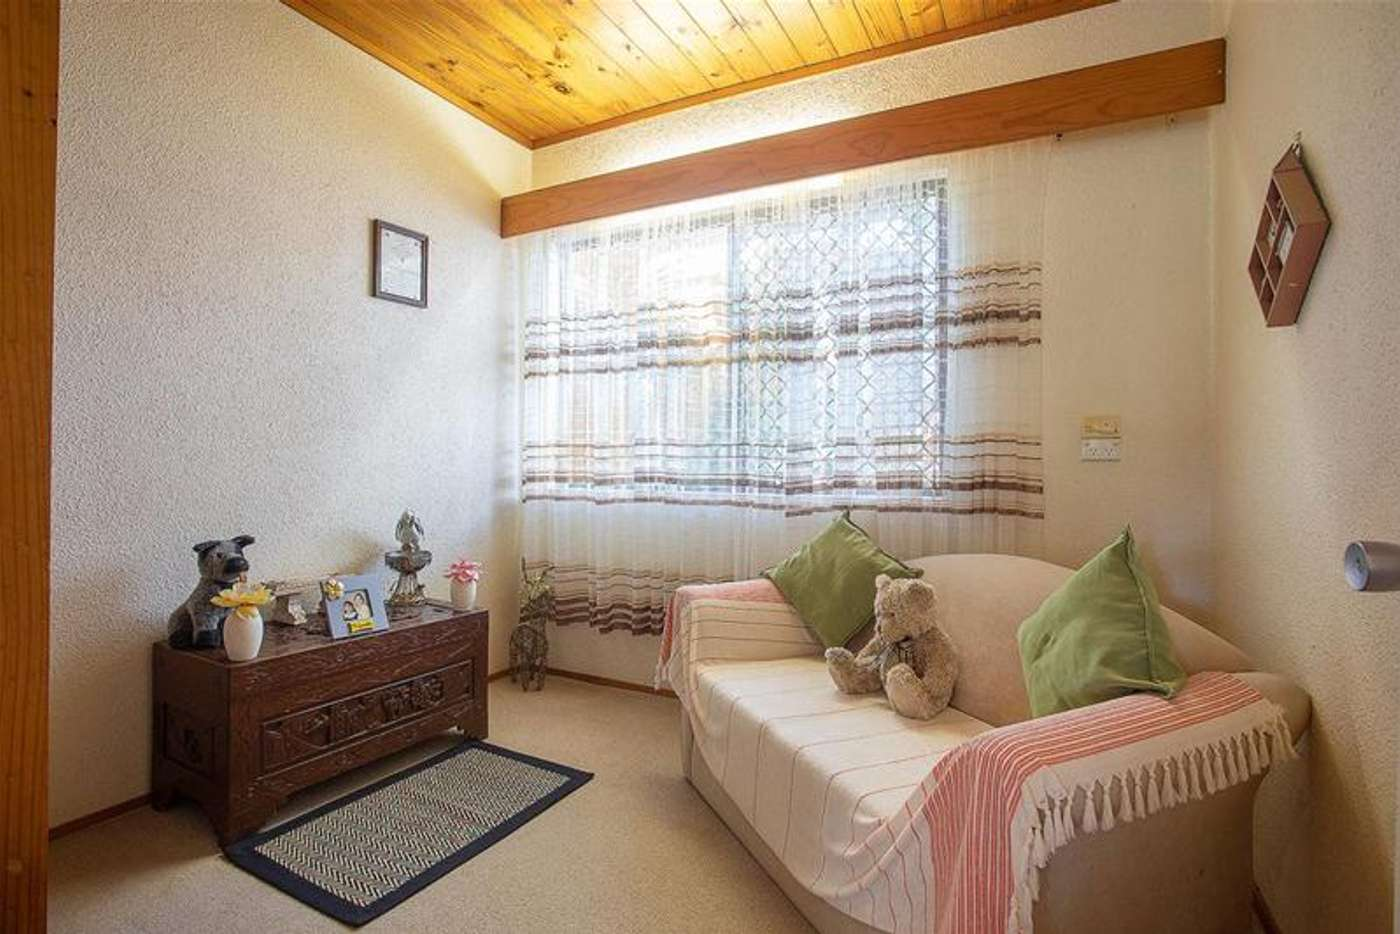 Sixth view of Homely house listing, 9 Andrew Milne Drive, Mount Pleasant QLD 4740